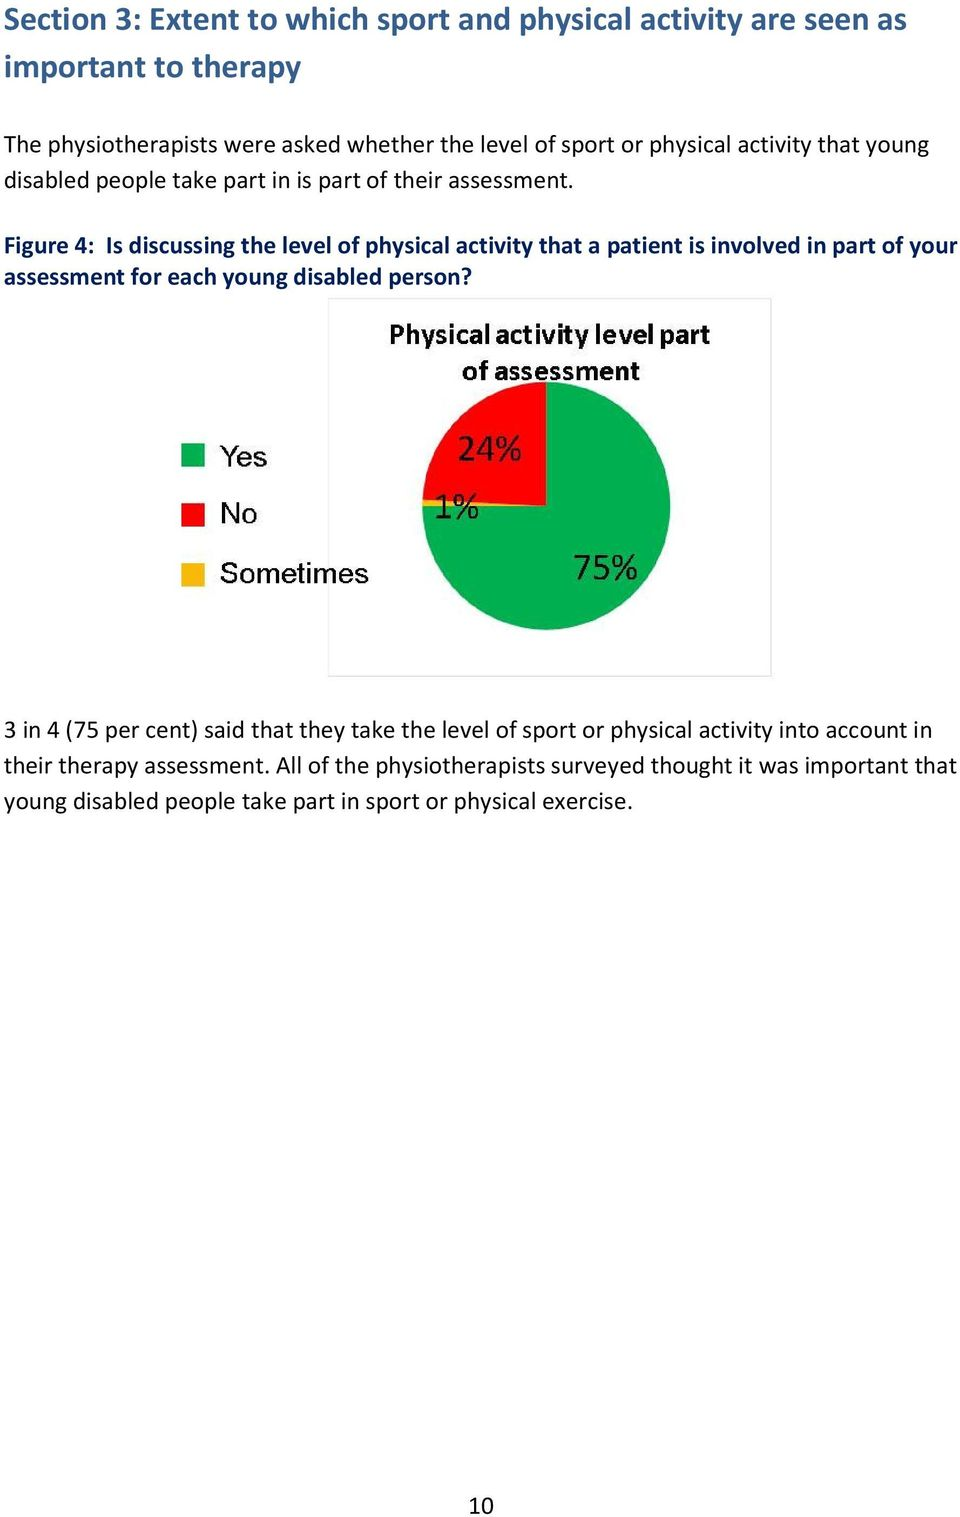 Figure 4: Is discussing the level of physical activity that a patient is involved in part of your assessment for each young disabled person?